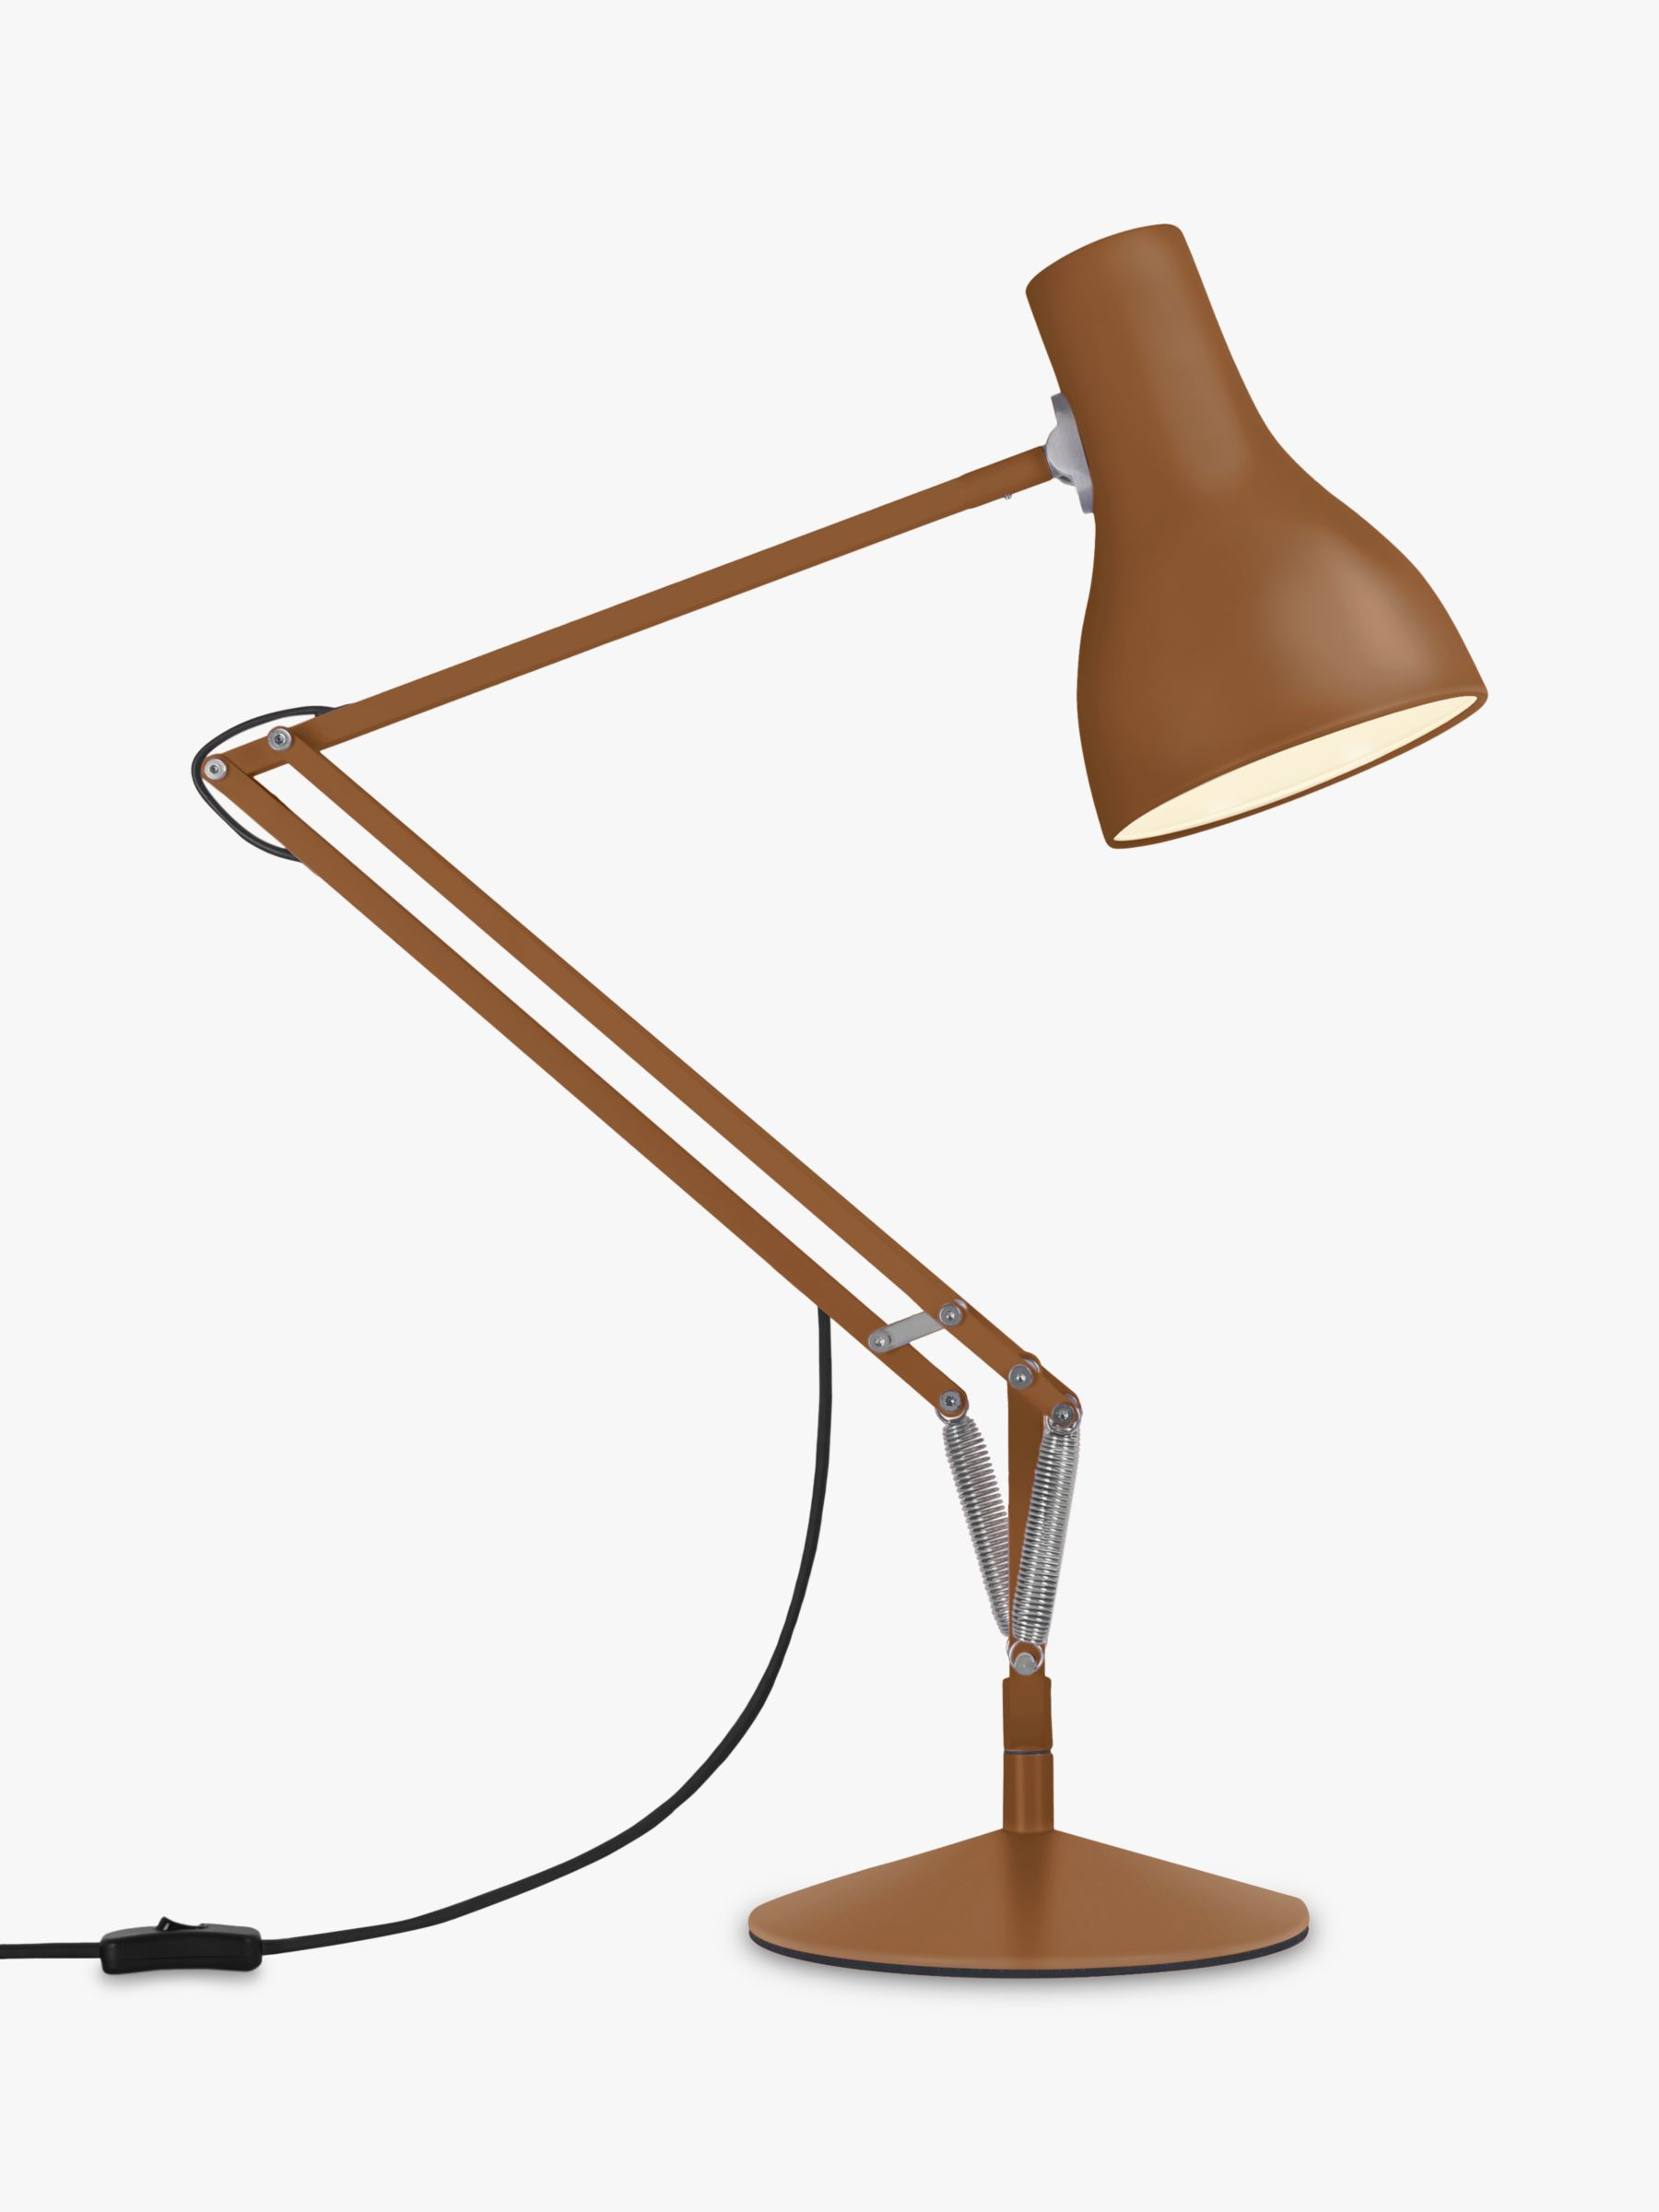 Anglepoise Anglepoise Type 75 Margaret Howell Edition Desk Lamp